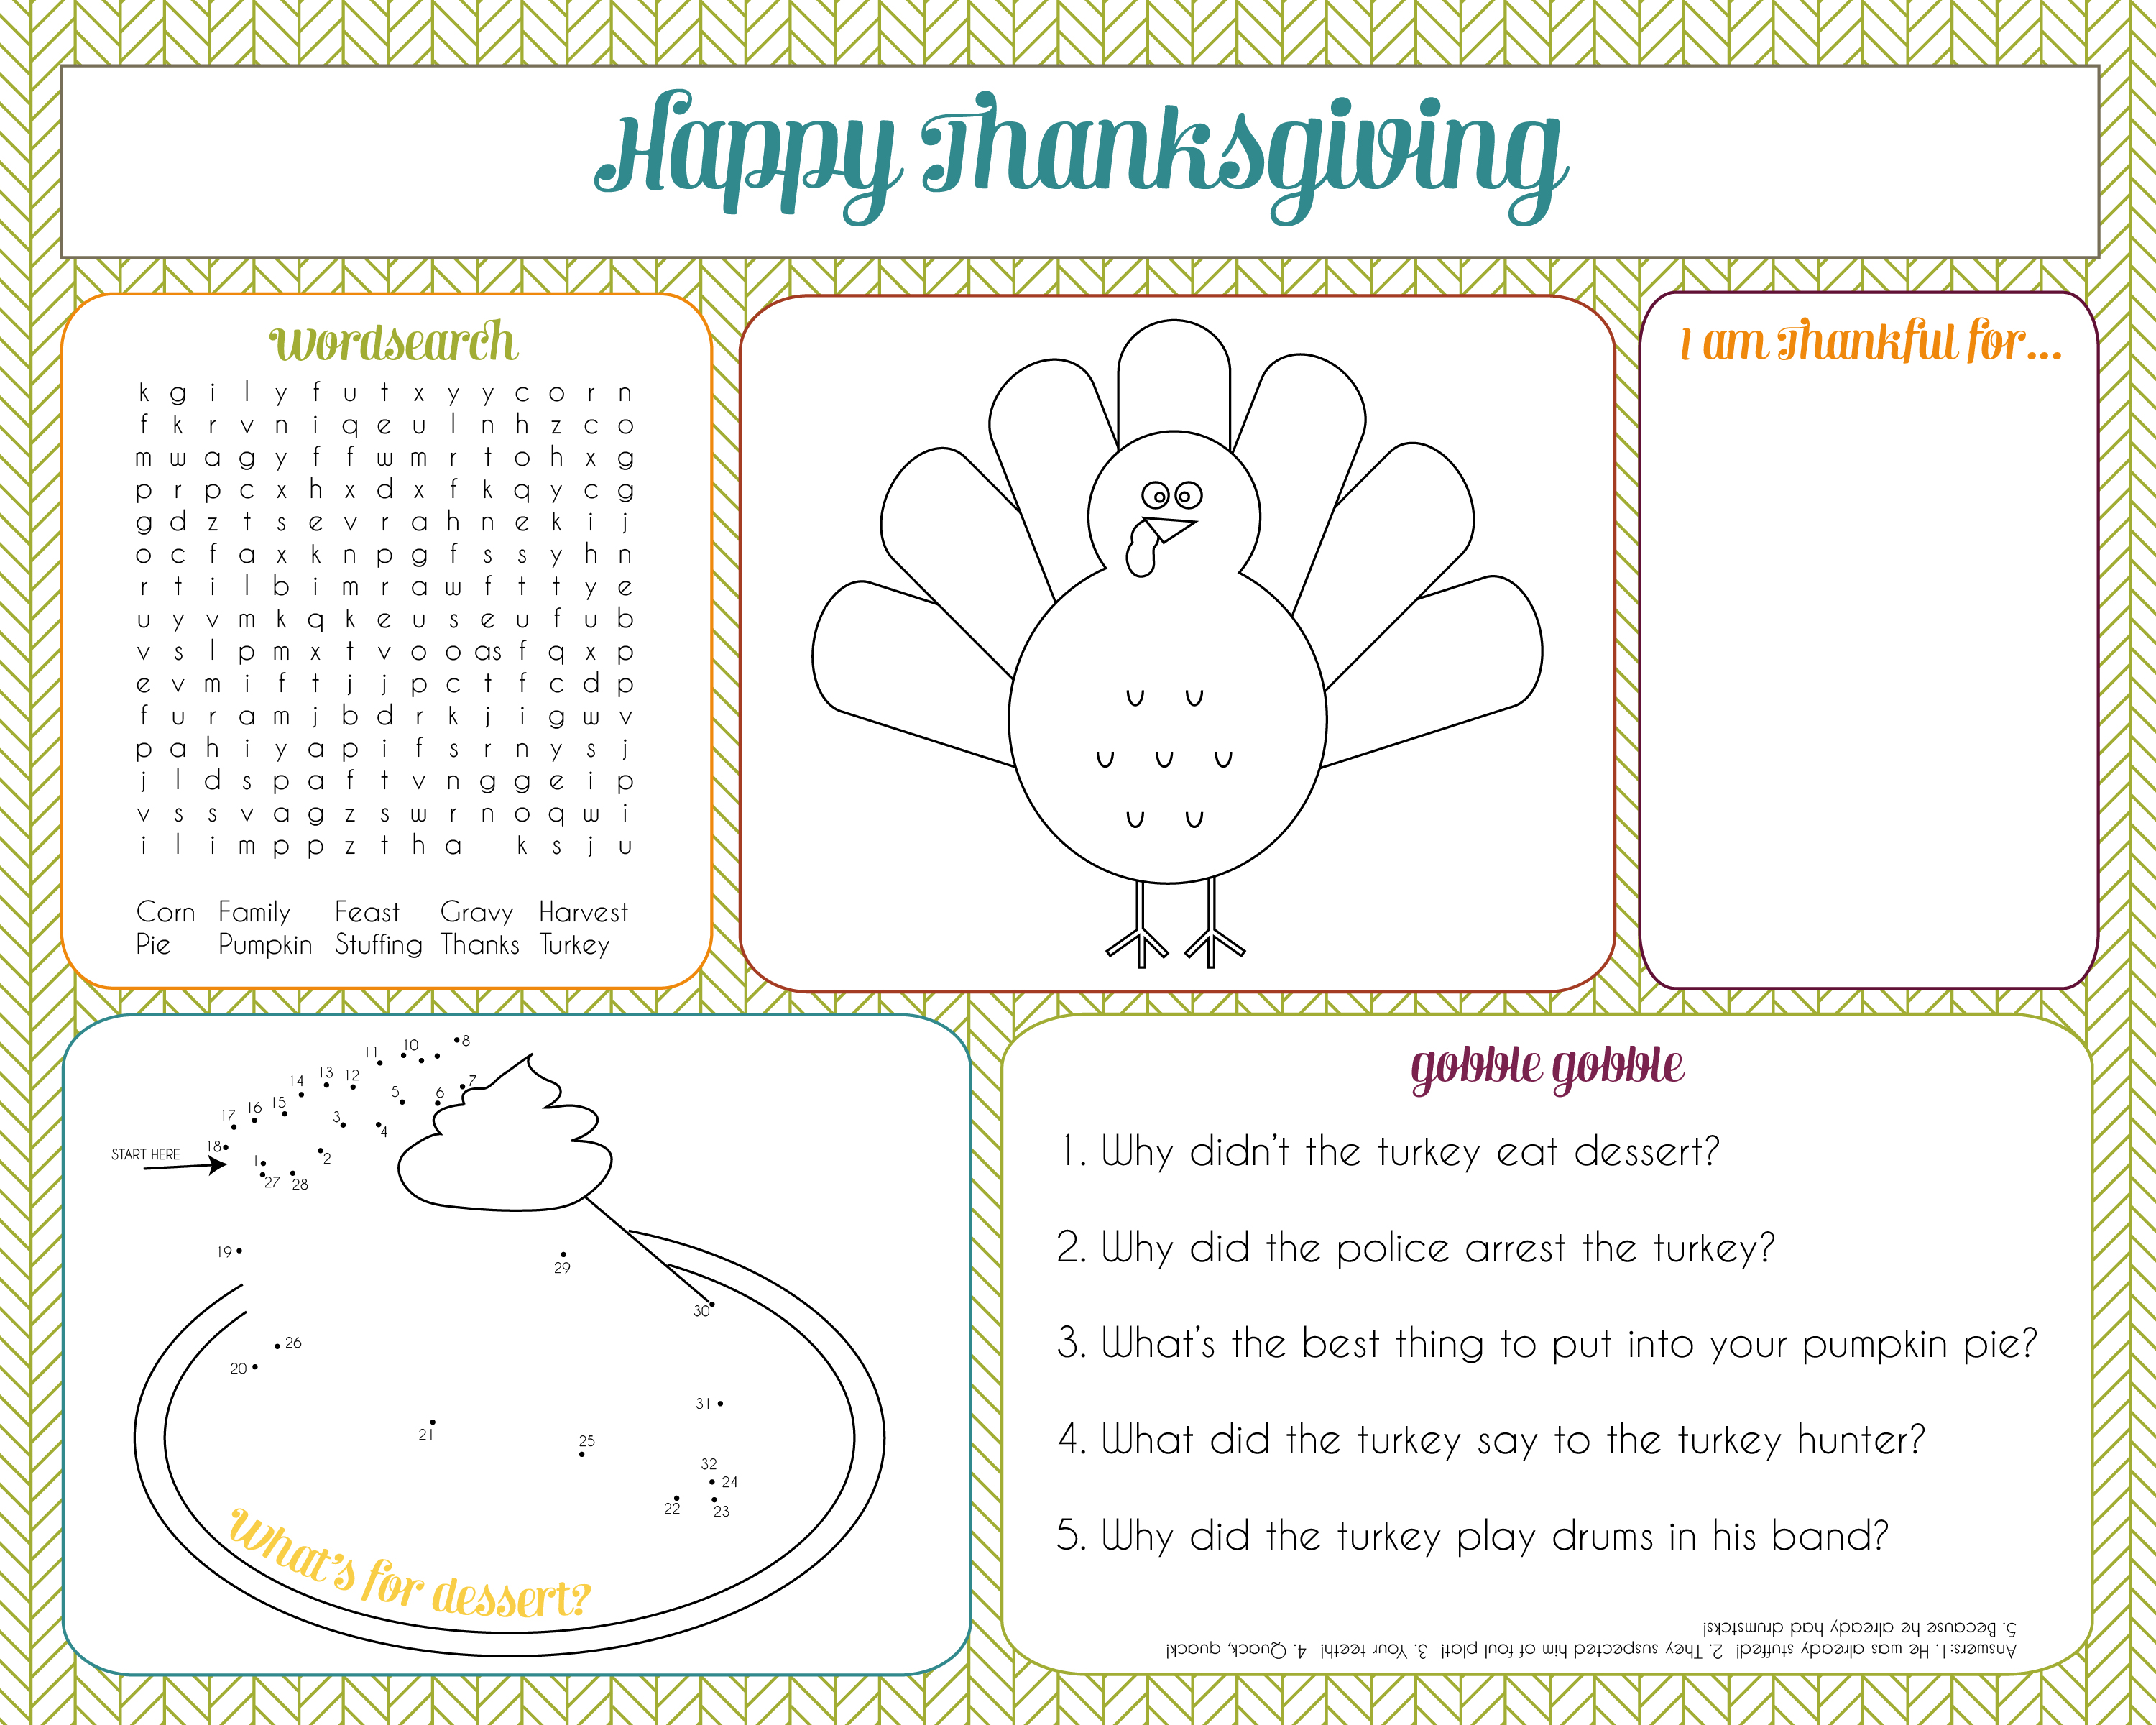 Thanksgiving Activity for Kids - Thanksgiving Activity Placemat